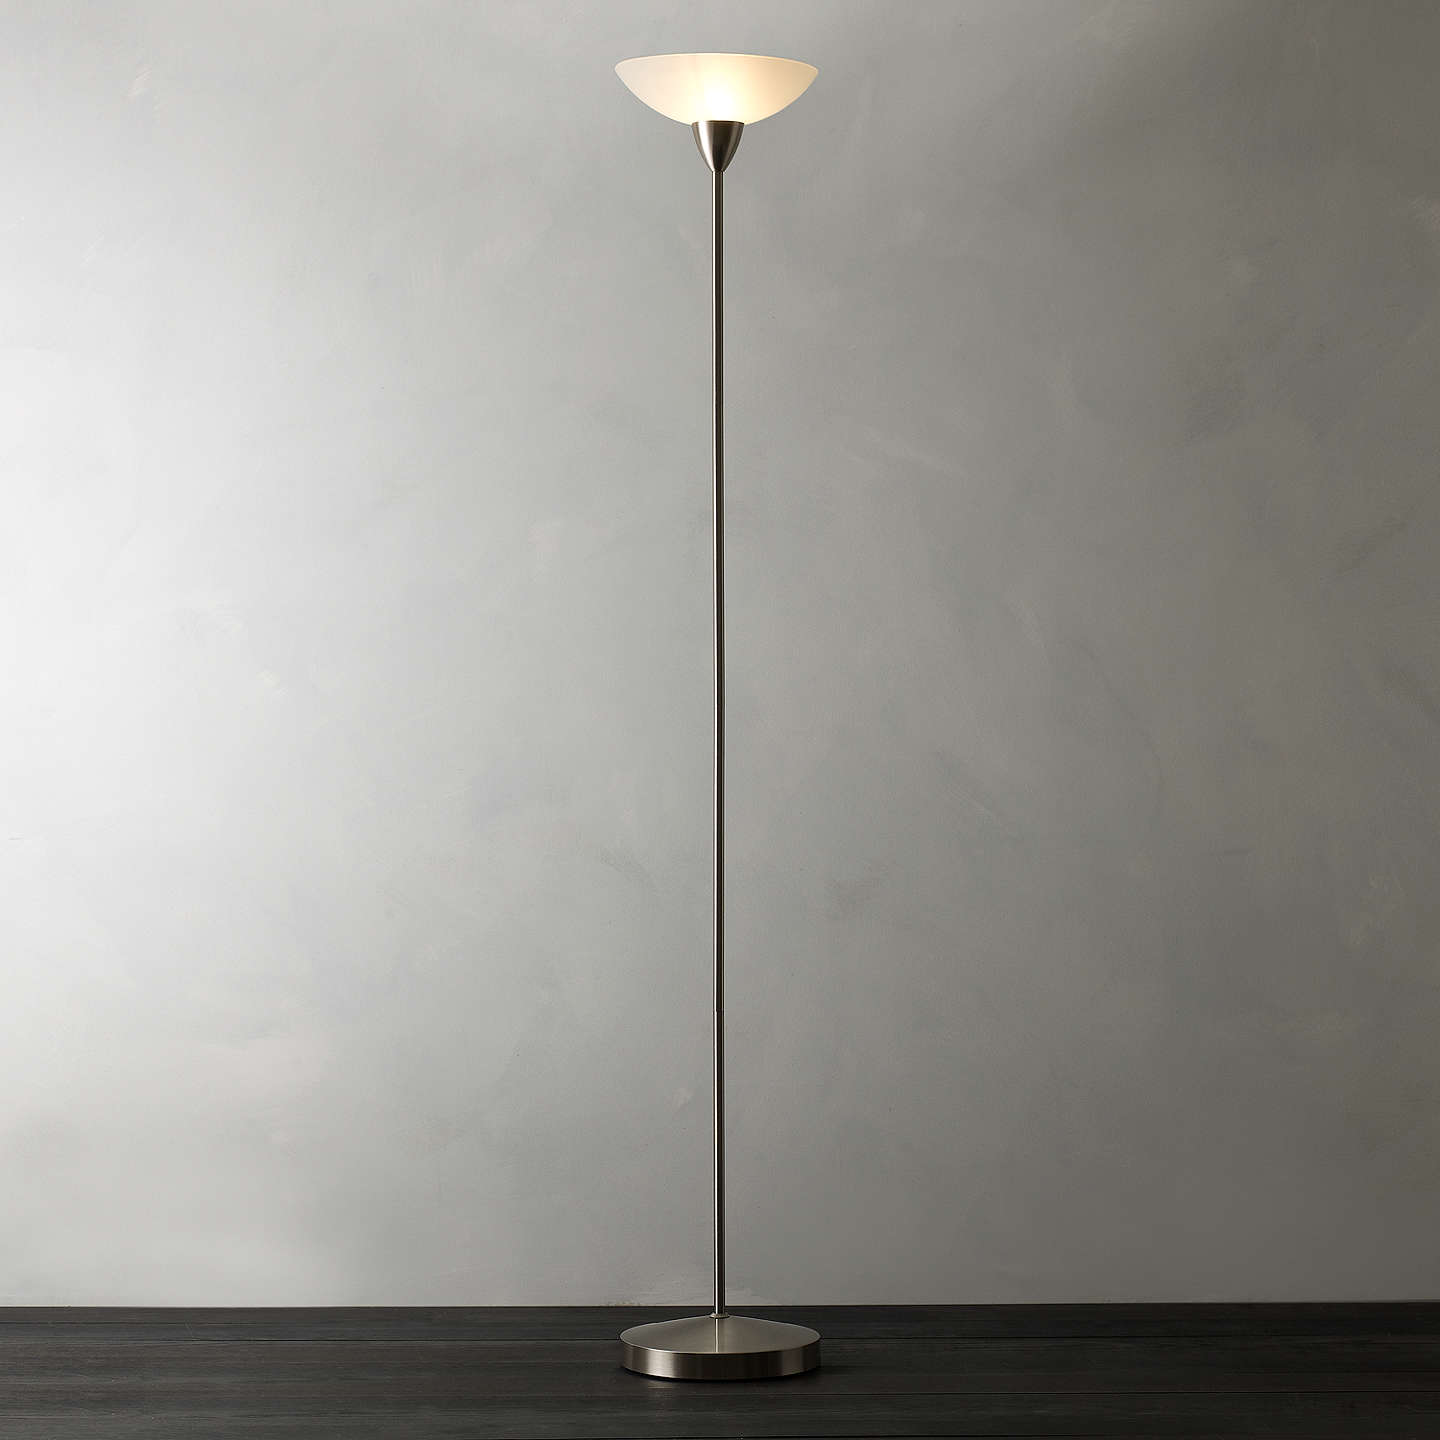 House by john lewis darlington uplighter floor lamp at john lewis buyhouse by john lewis darlington uplighter floor lamp brushed chrome online at johnlewis aloadofball Image collections